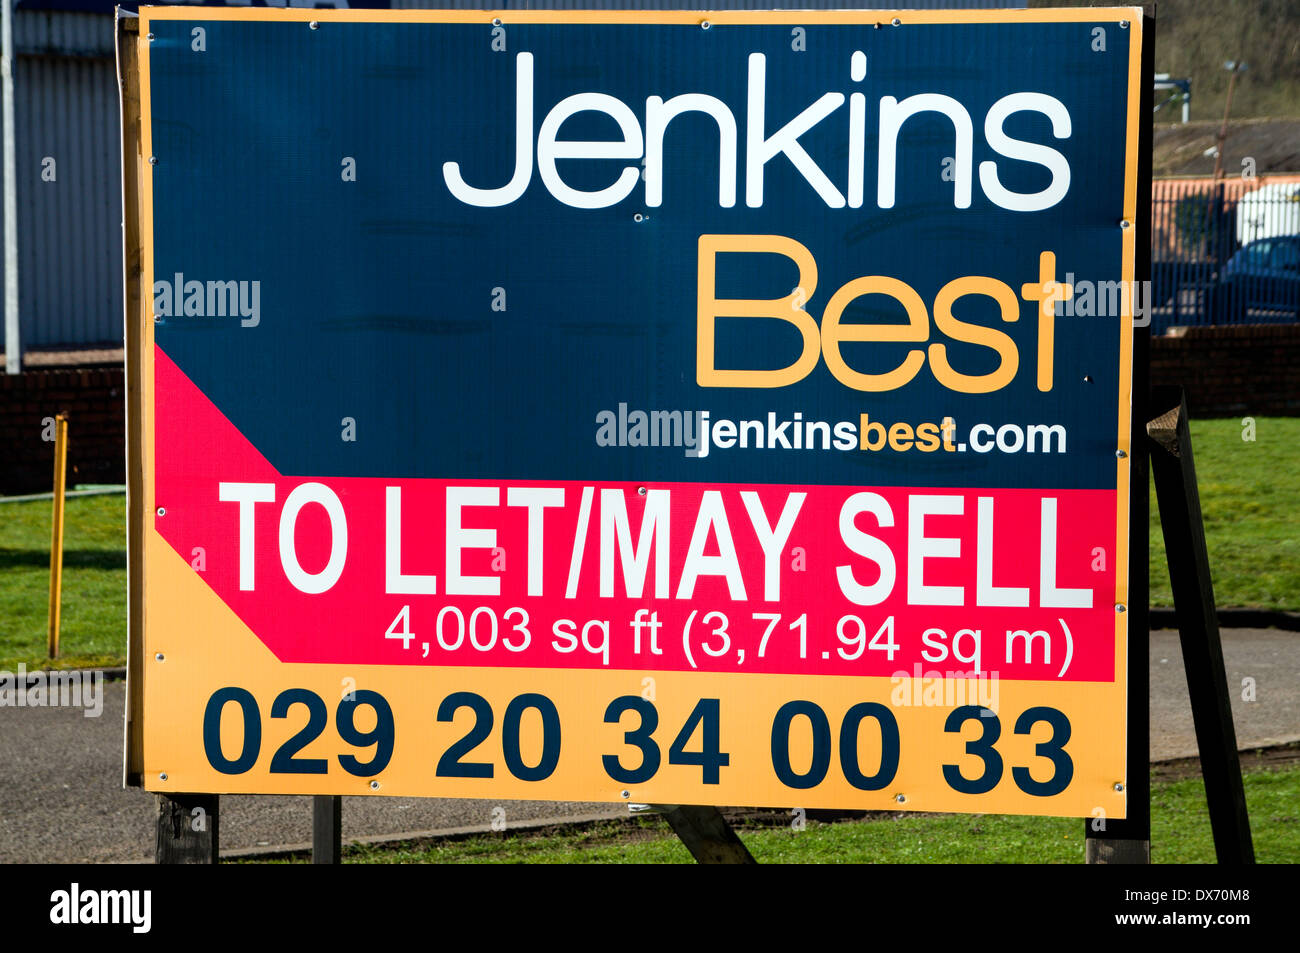 Property for sale to let sign, Cardiff, Wales. - Stock Image